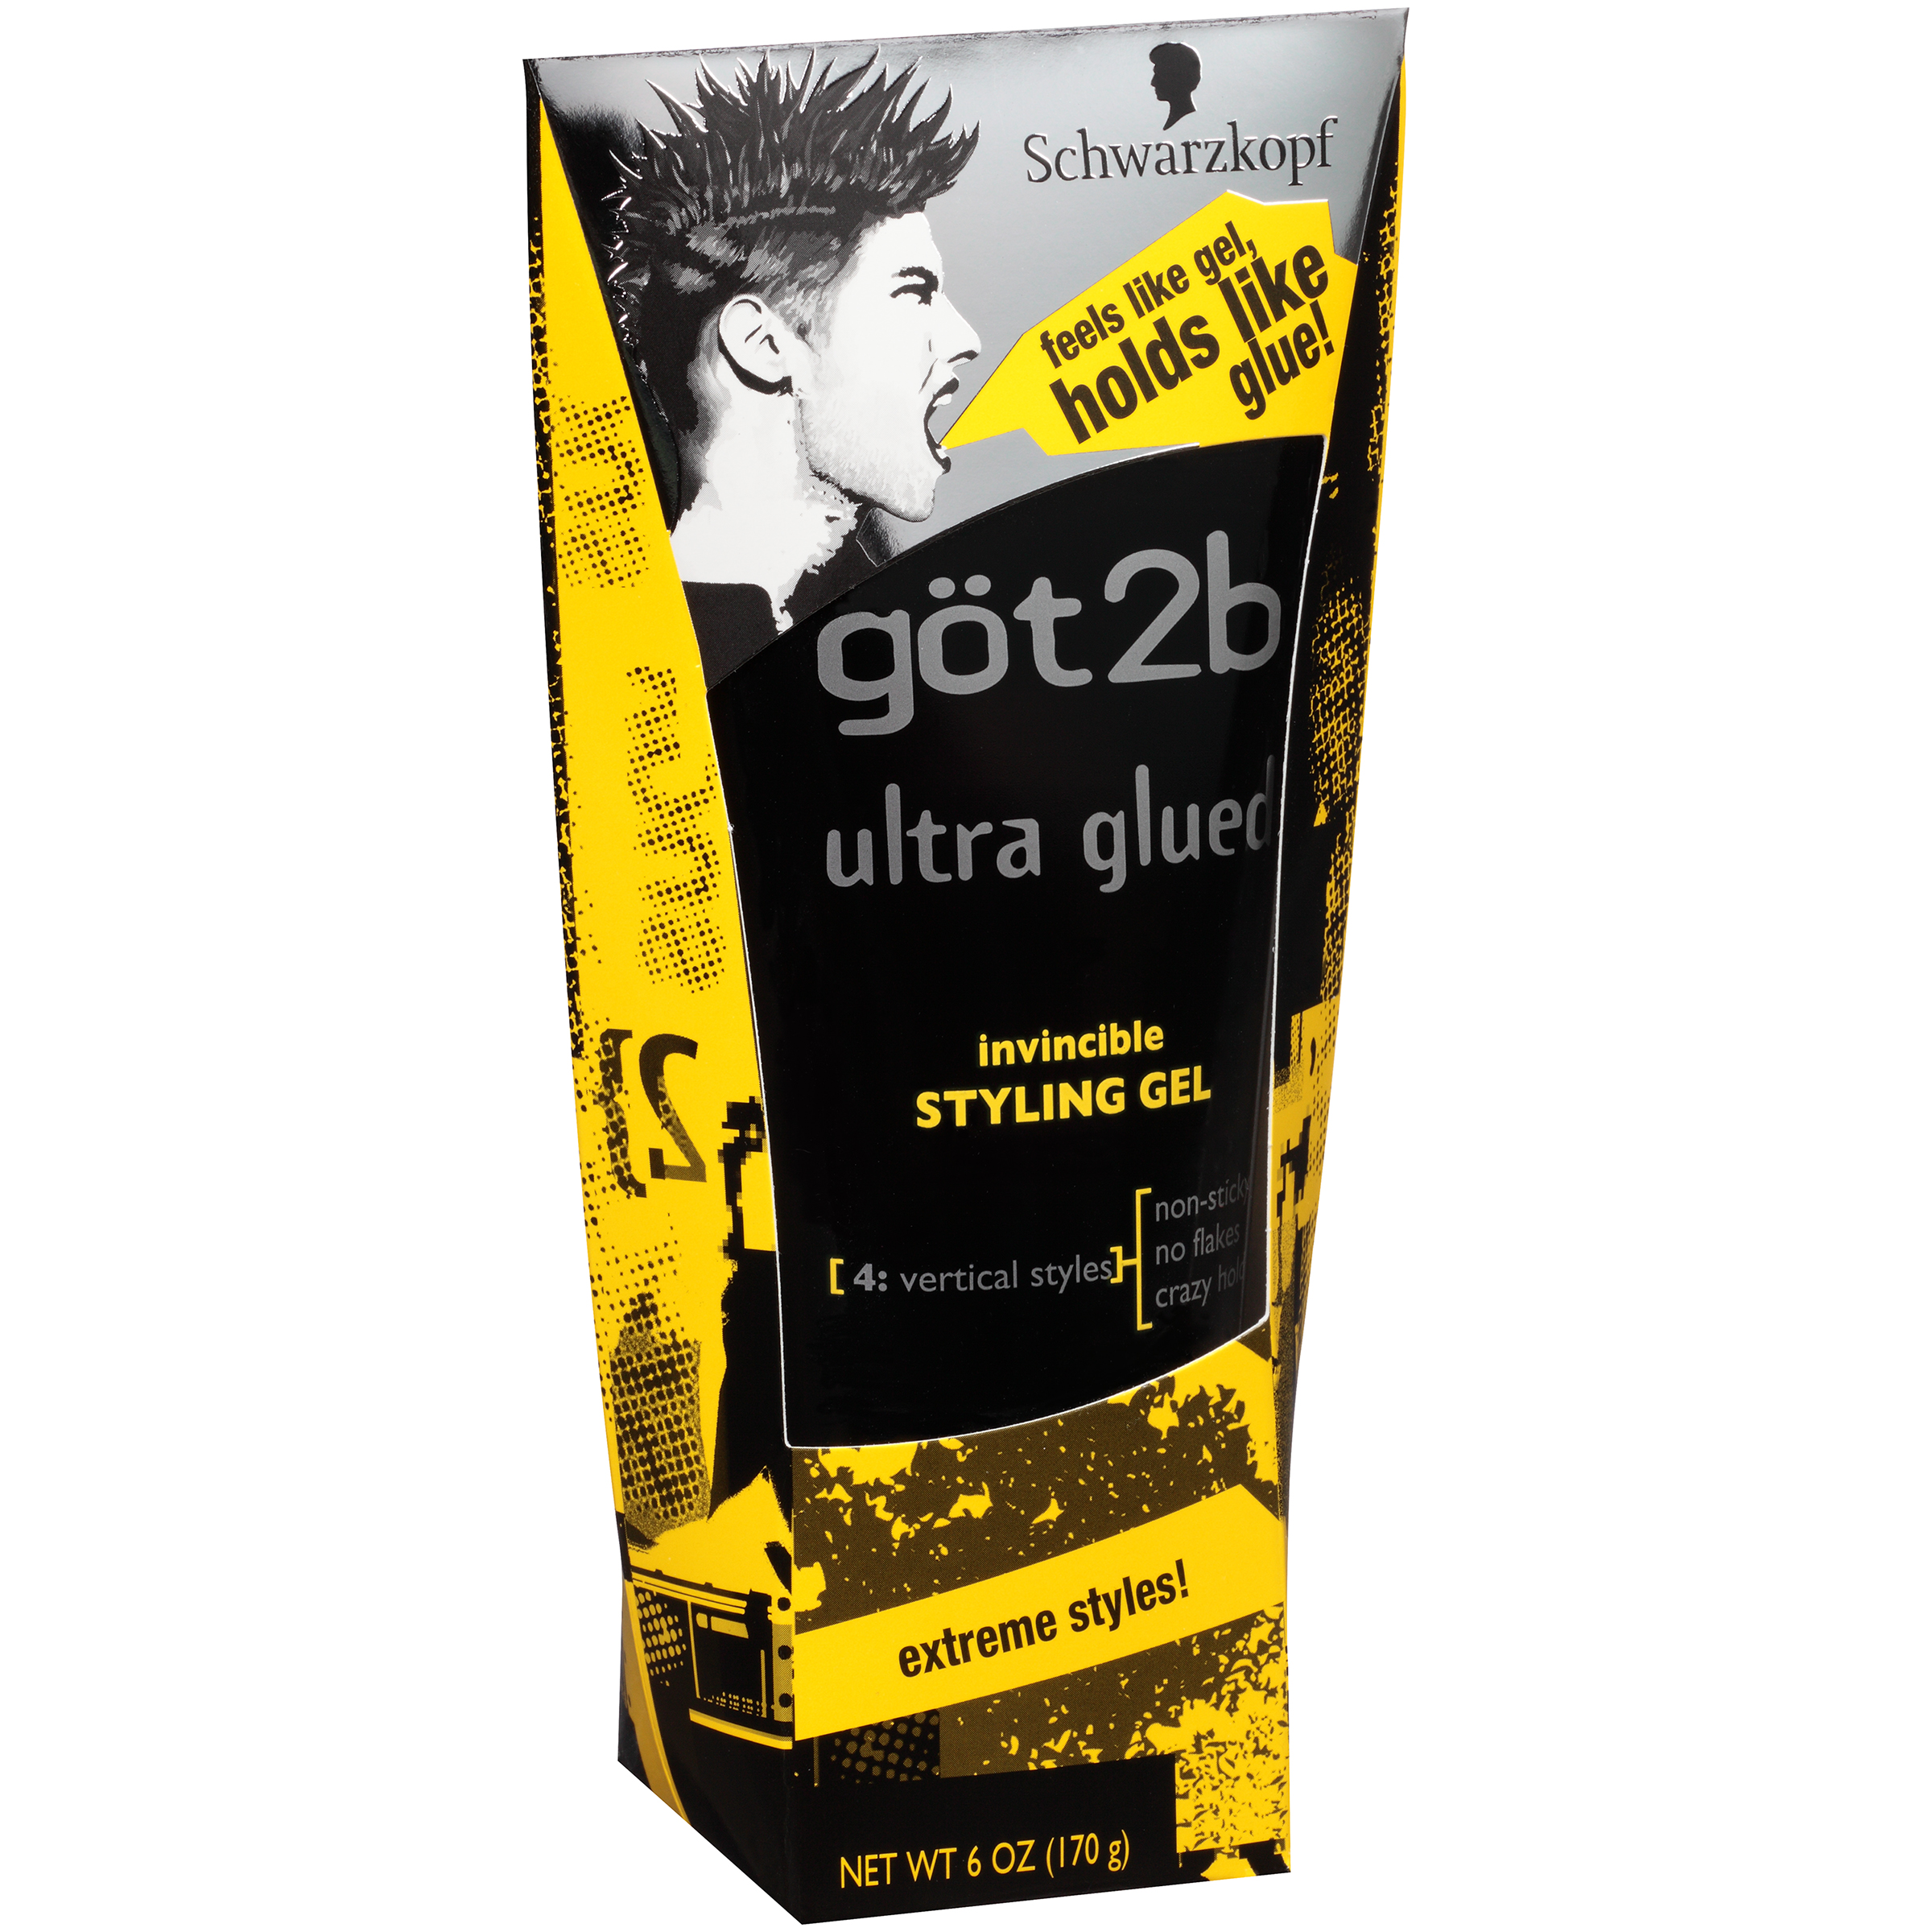 got2b Ultra Glued Invincible Styling Gel, 6 oz